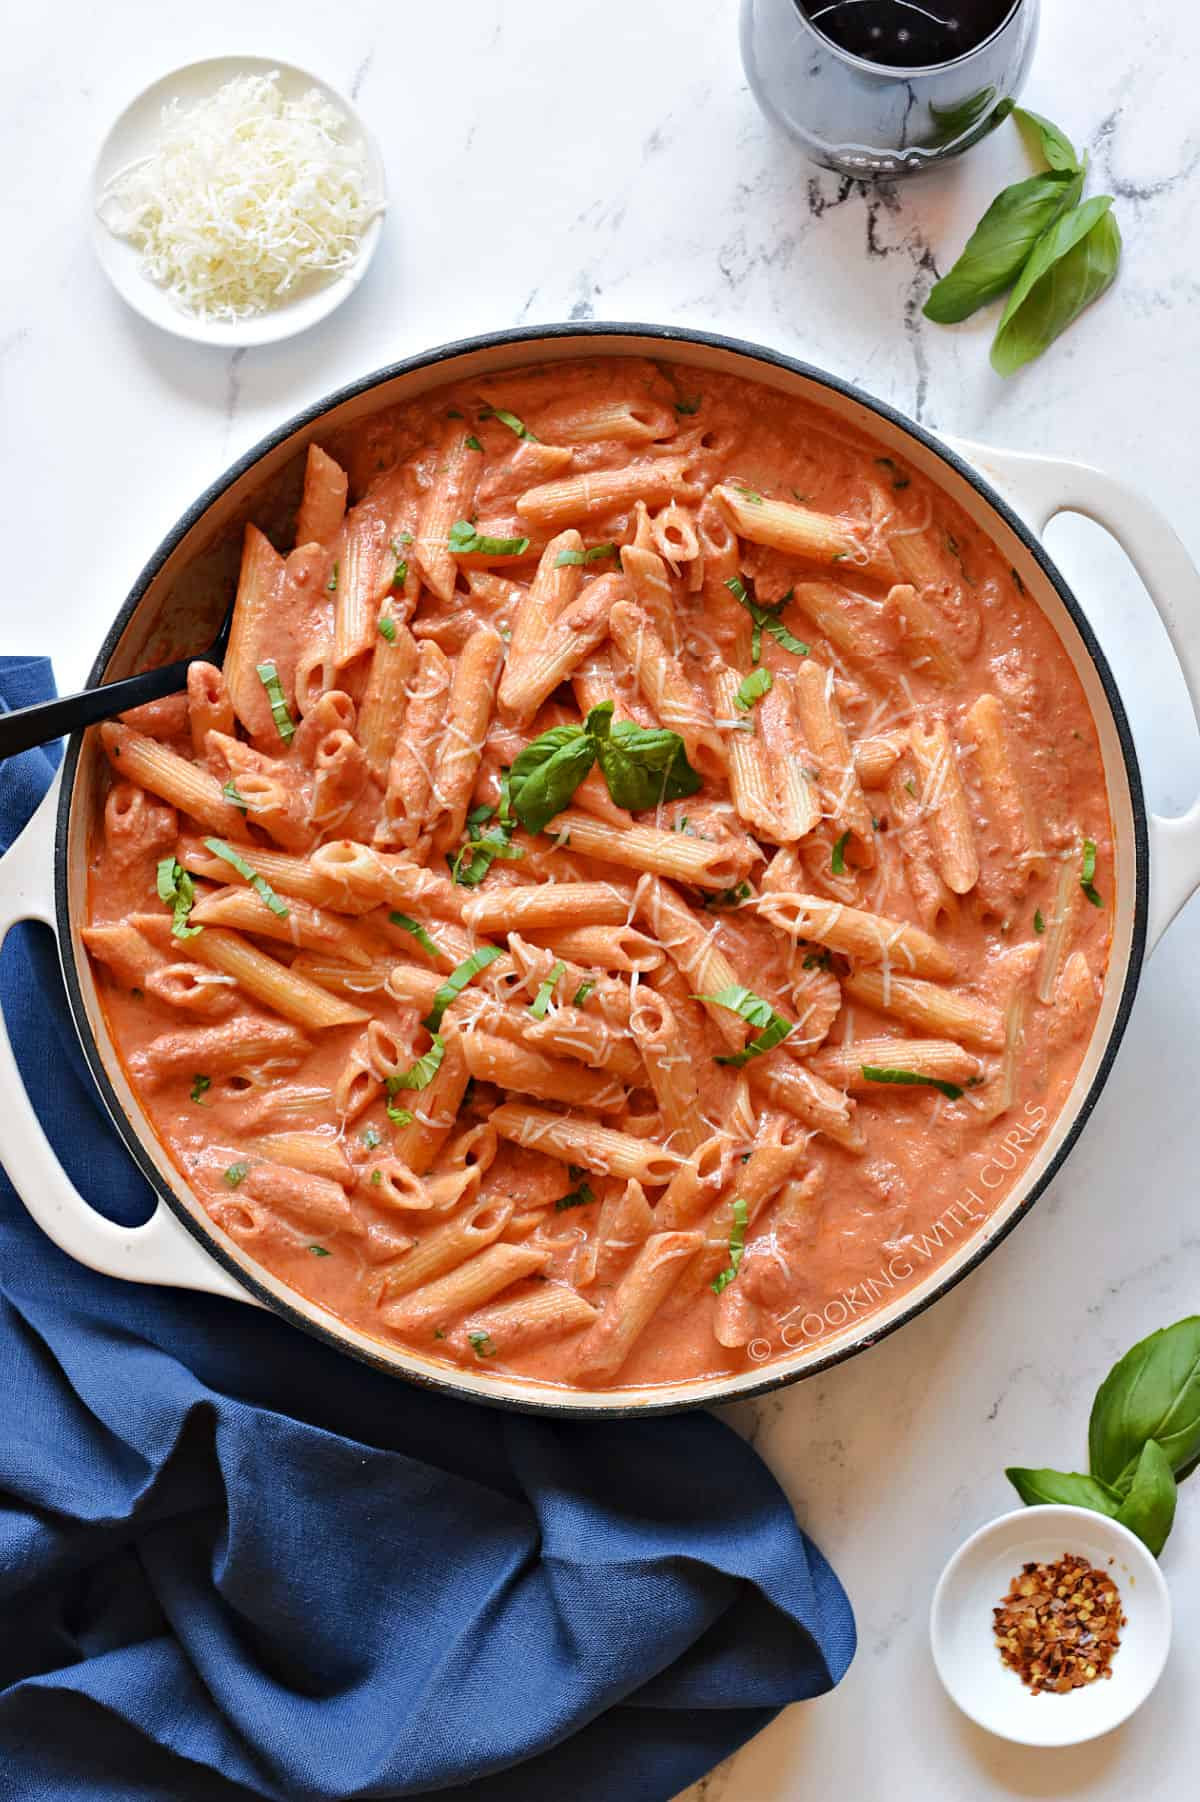 Penne tossed in a creamy tomato sauce topped with grated cheese and fresh basil in a large skillet.